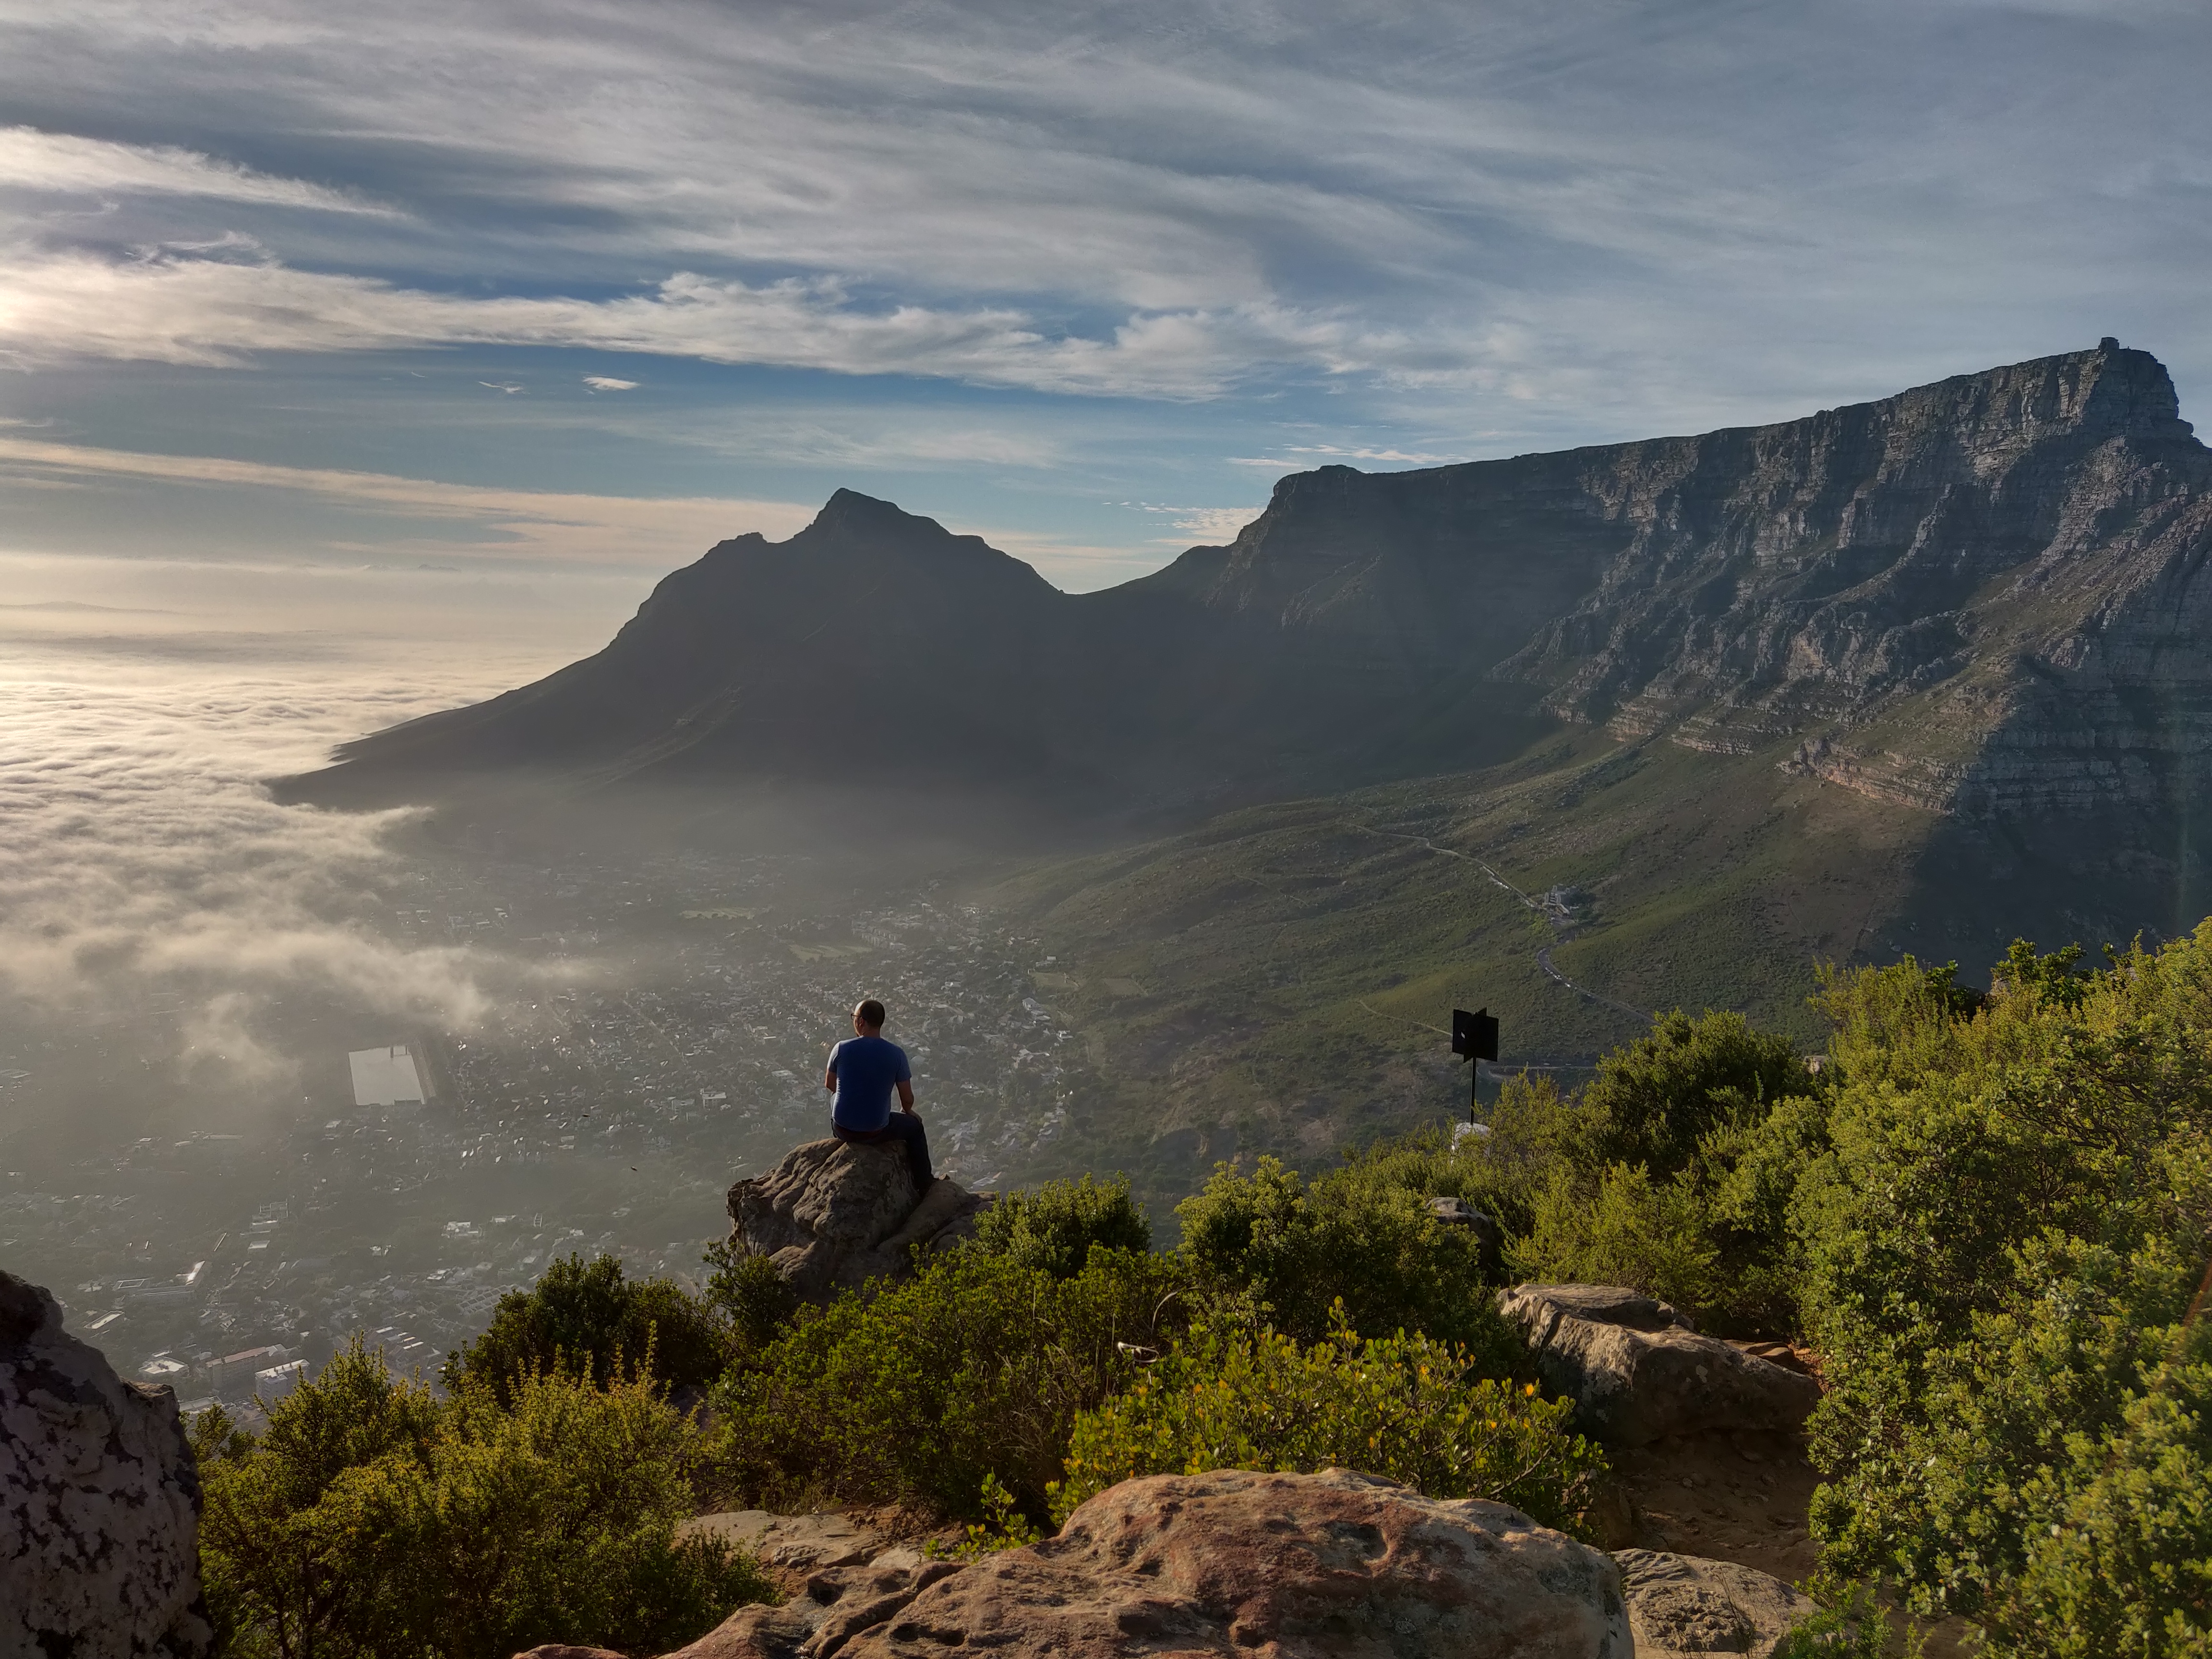 Views-from-Lions-Head-at-Sunrise-in-Cape-Town-South-Africa